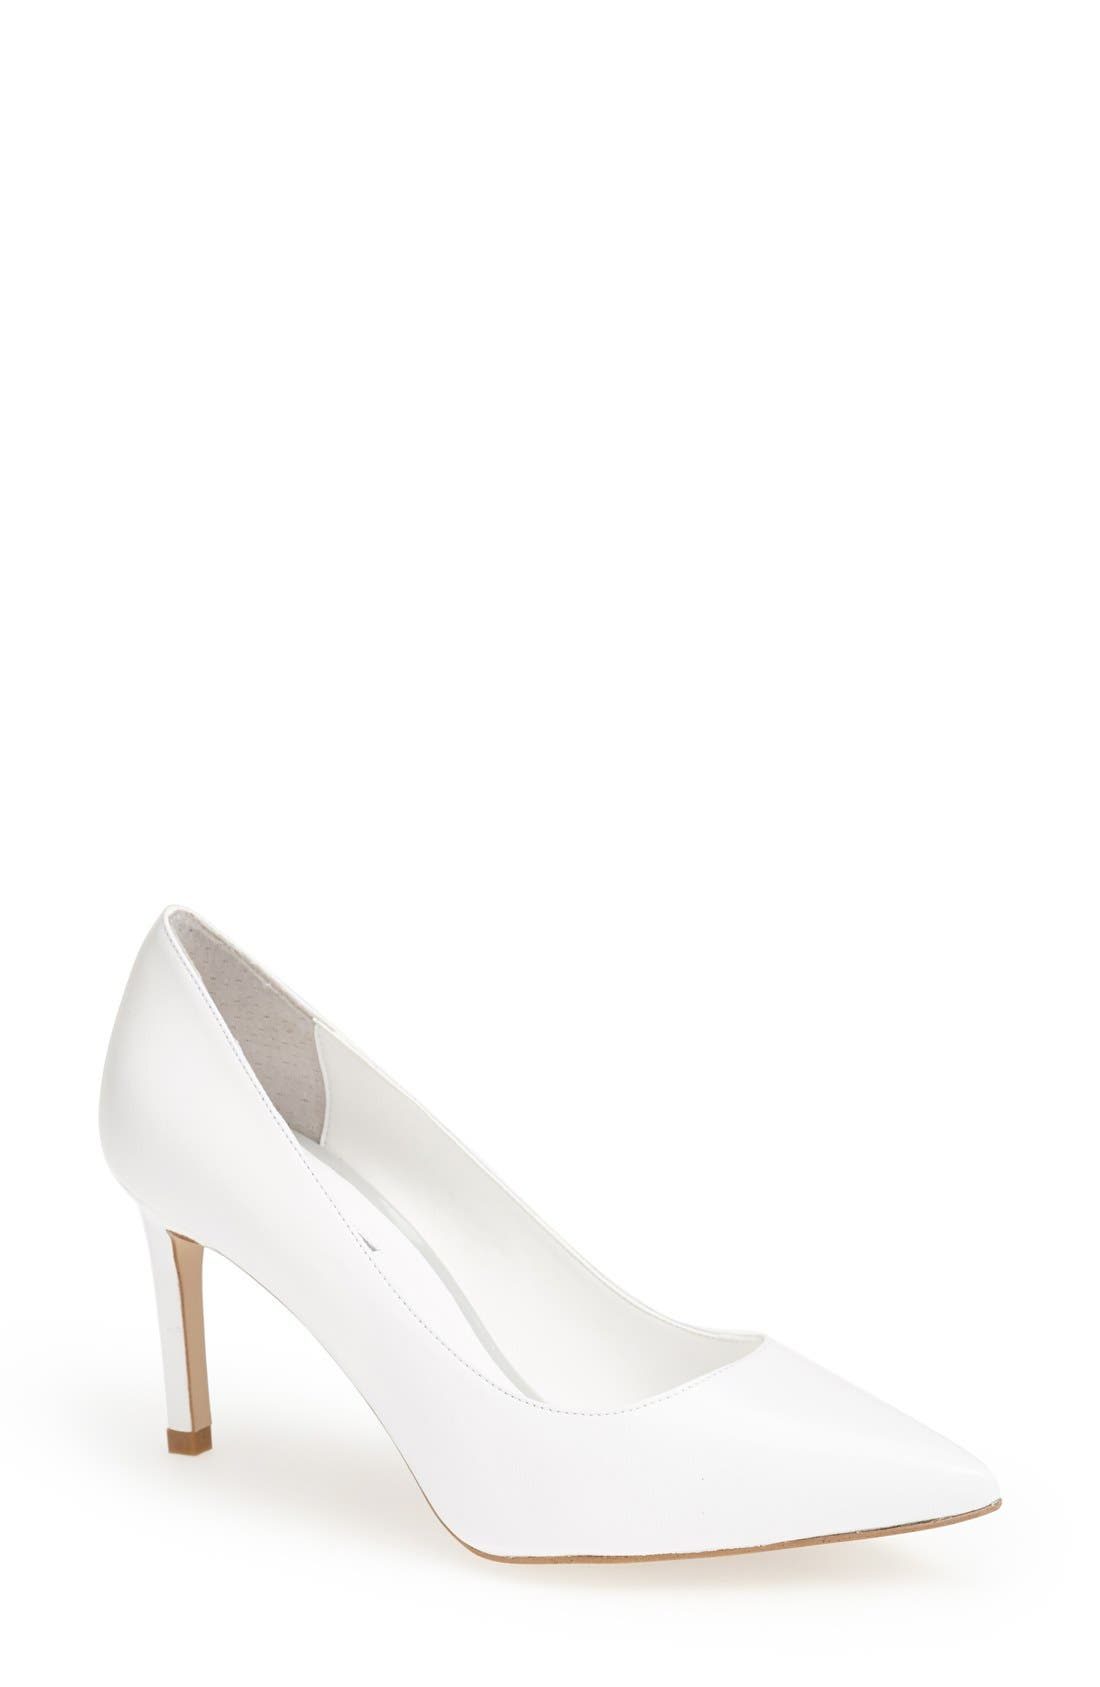 Main Image - Topshop 'Golden' Pointy Toe Pump (Women)